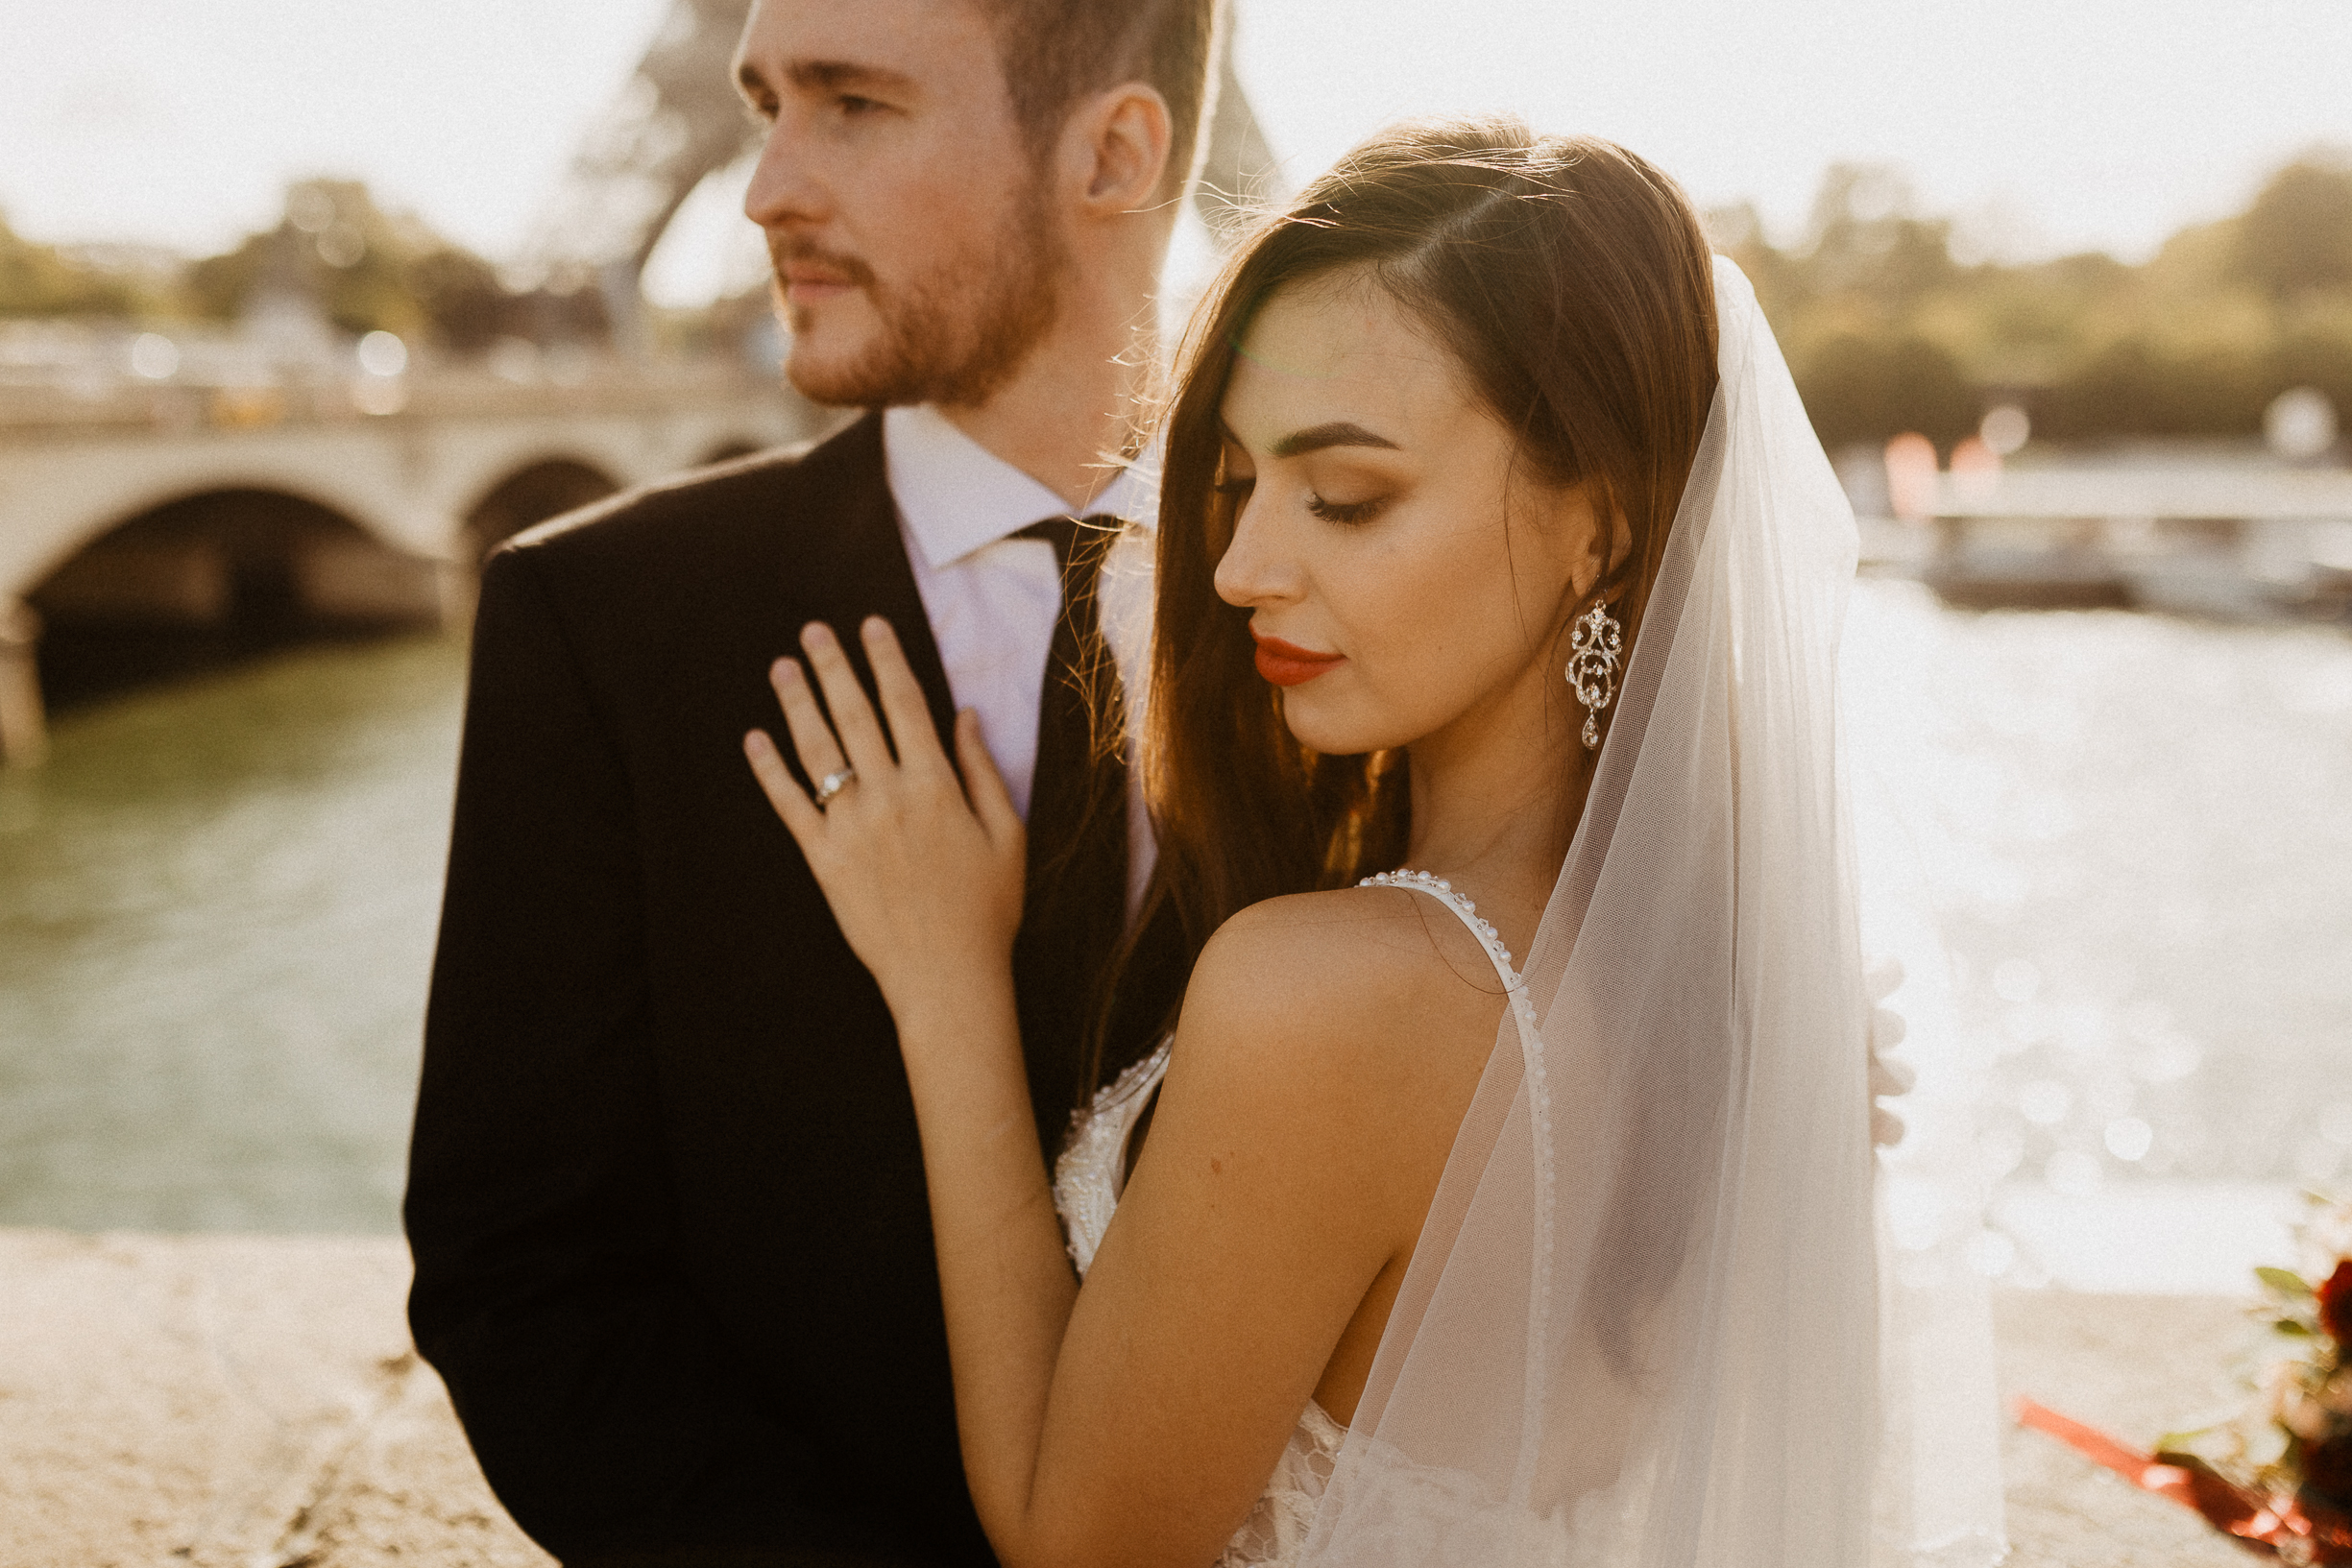 Intimate wedding portrait - paris photographer